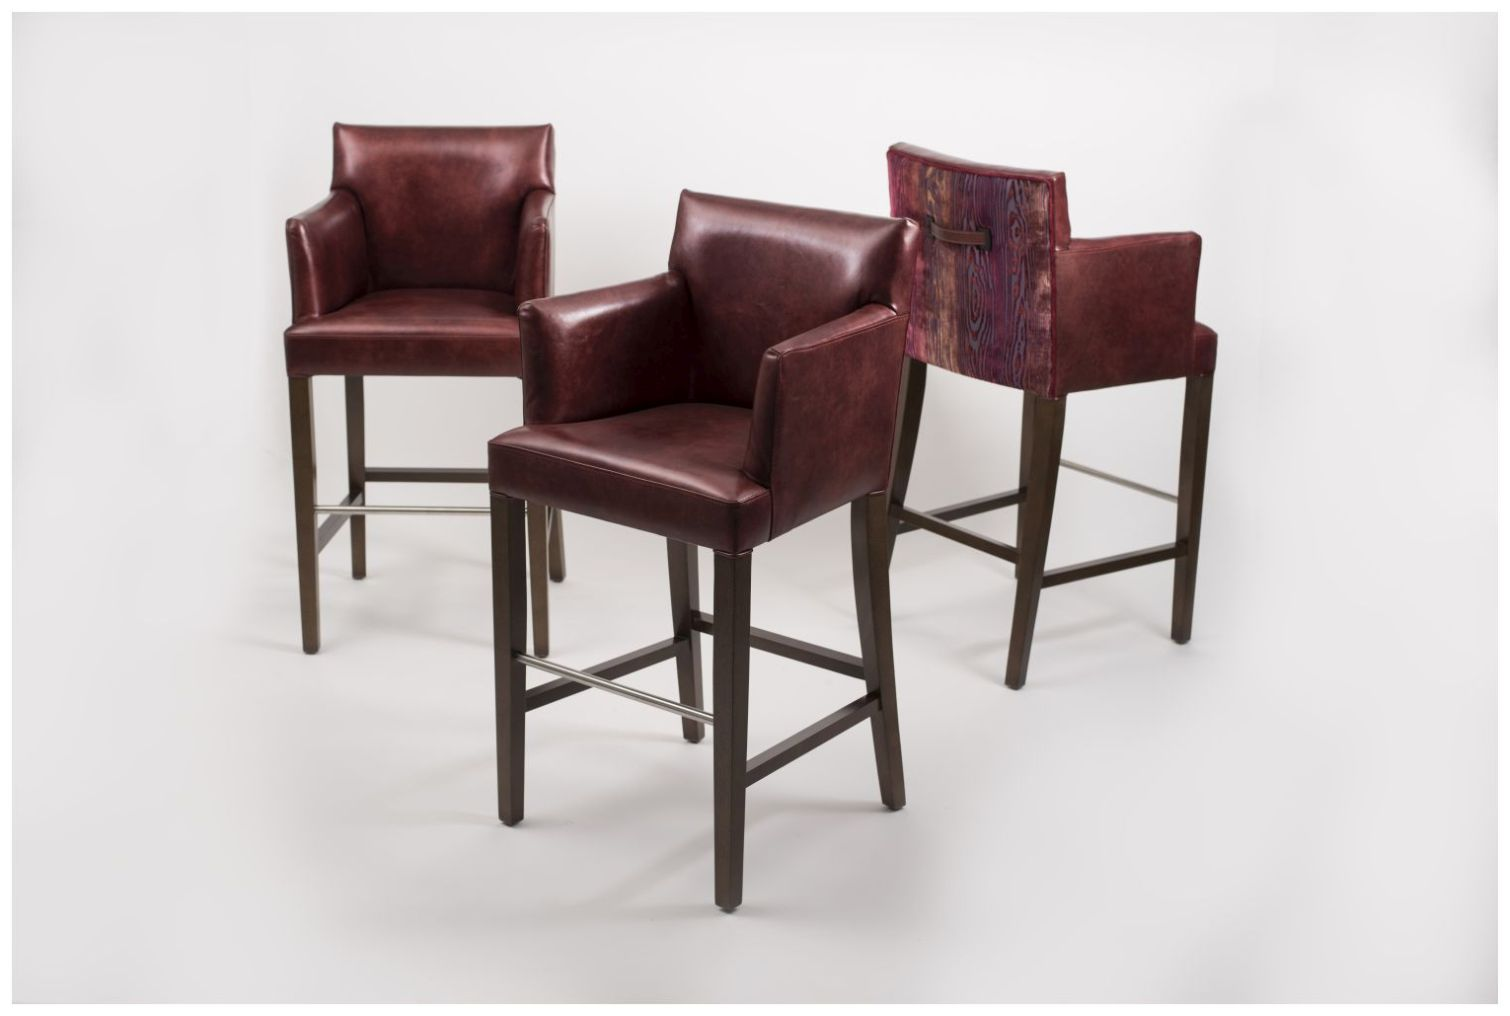 Custom Upholstered Barstools with Raised Arms